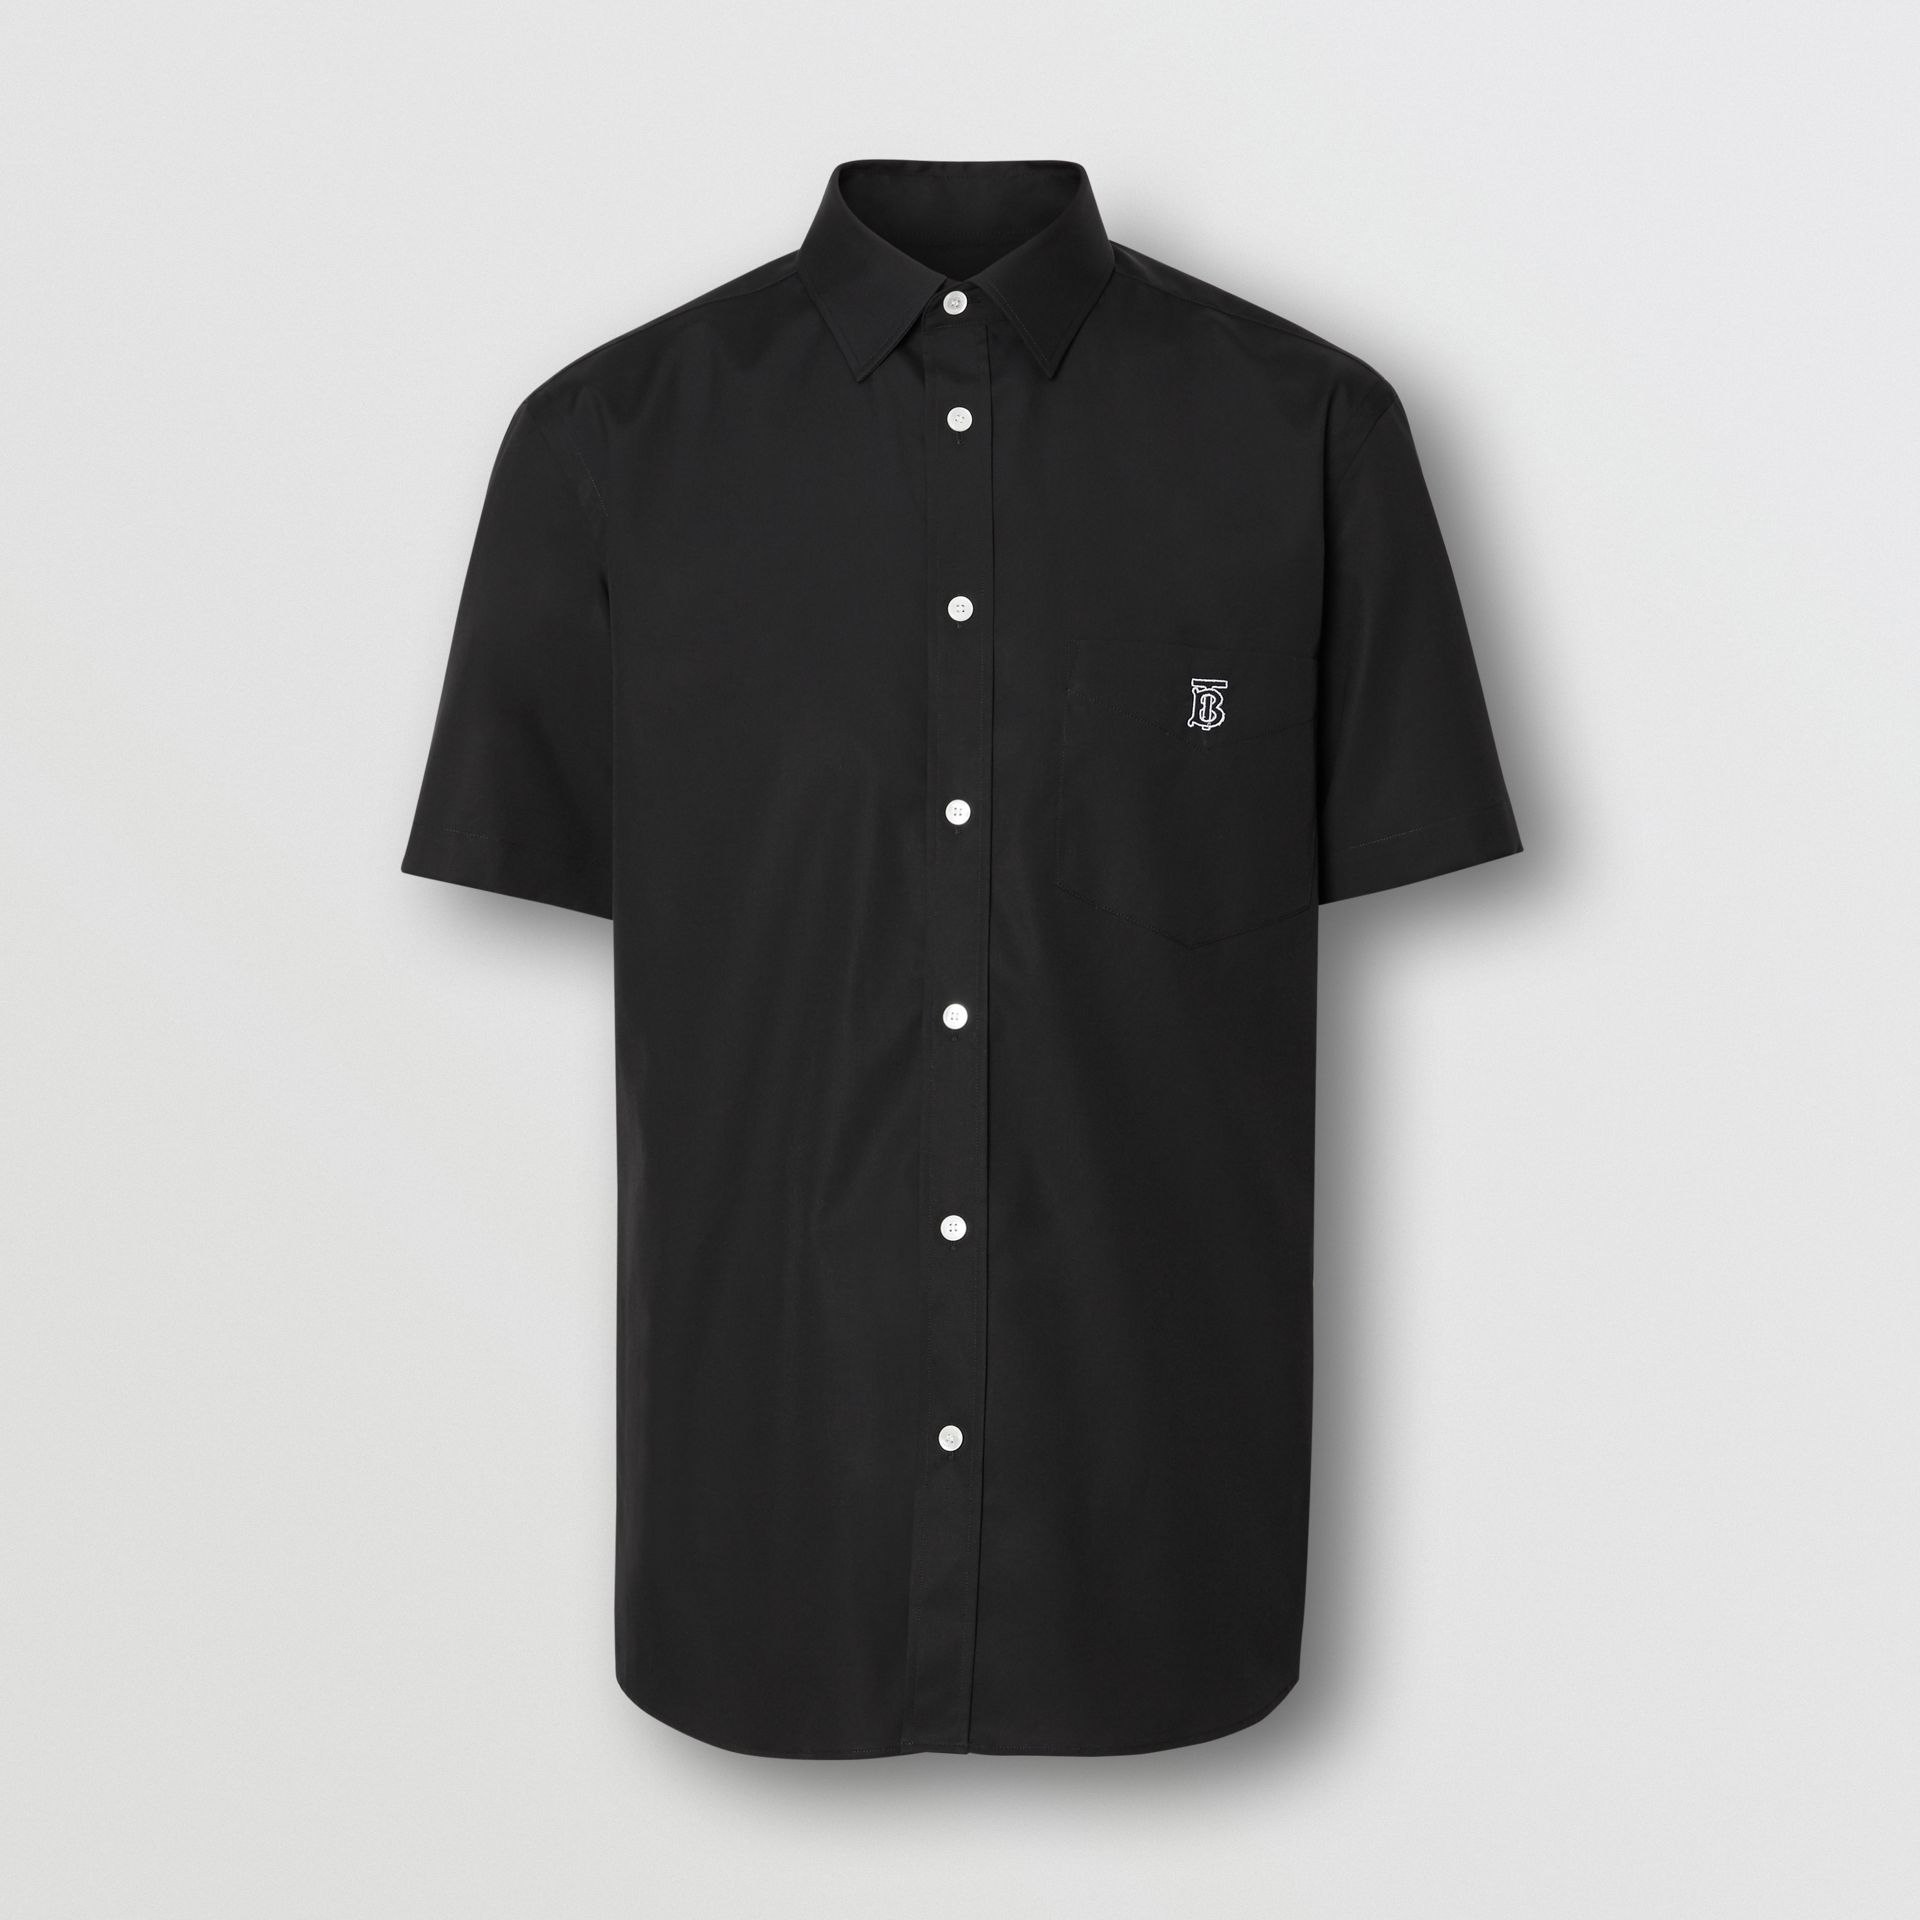 Short-sleeve Monogram Motif Stretch Cotton Shirt in Black - Men | Burberry Canada - gallery image 3